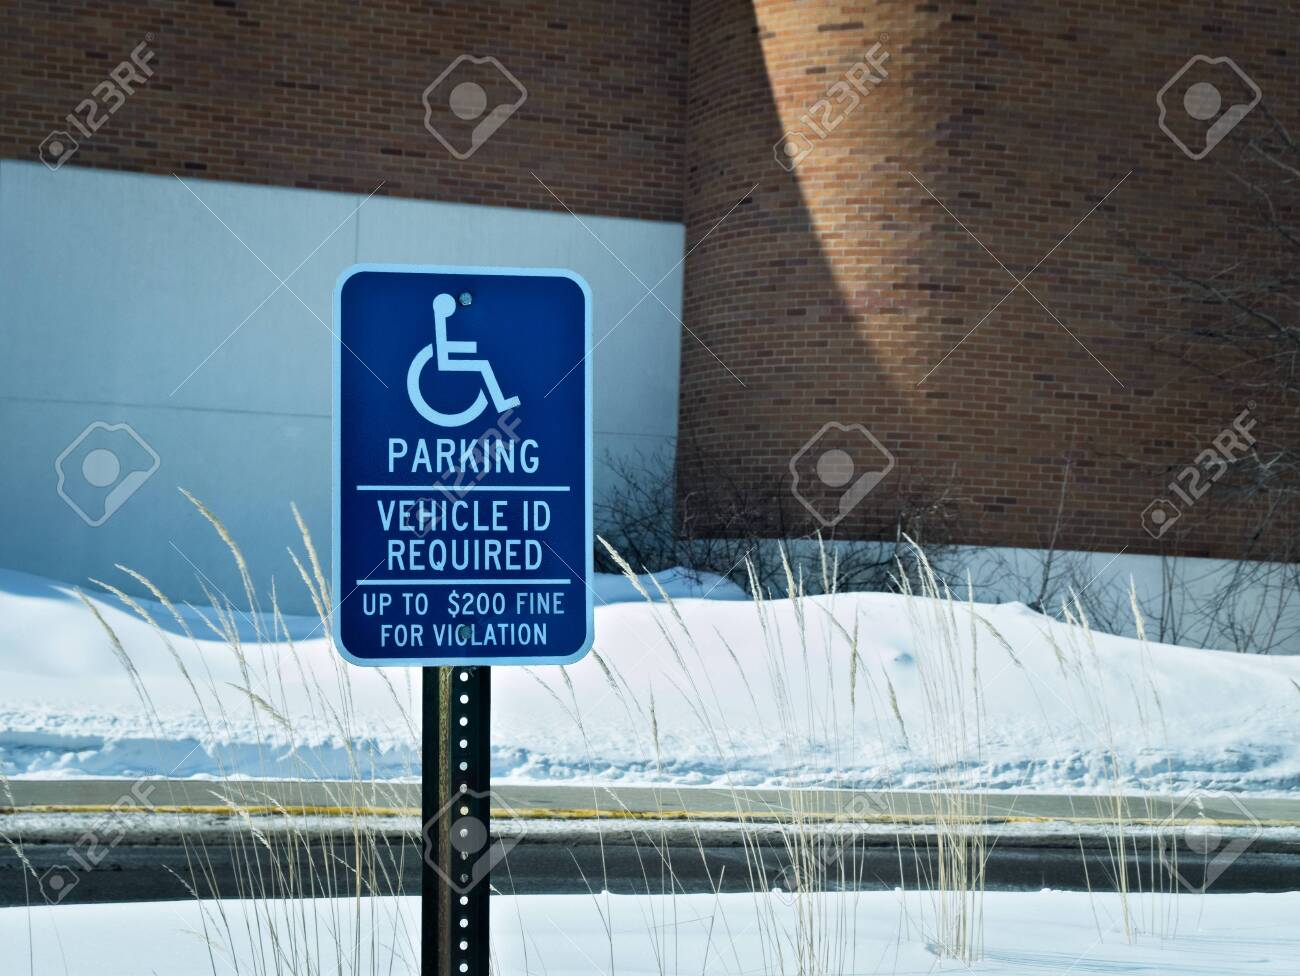 Handicapped parking sign posted in snow covered parking lot in winter. - 142323391